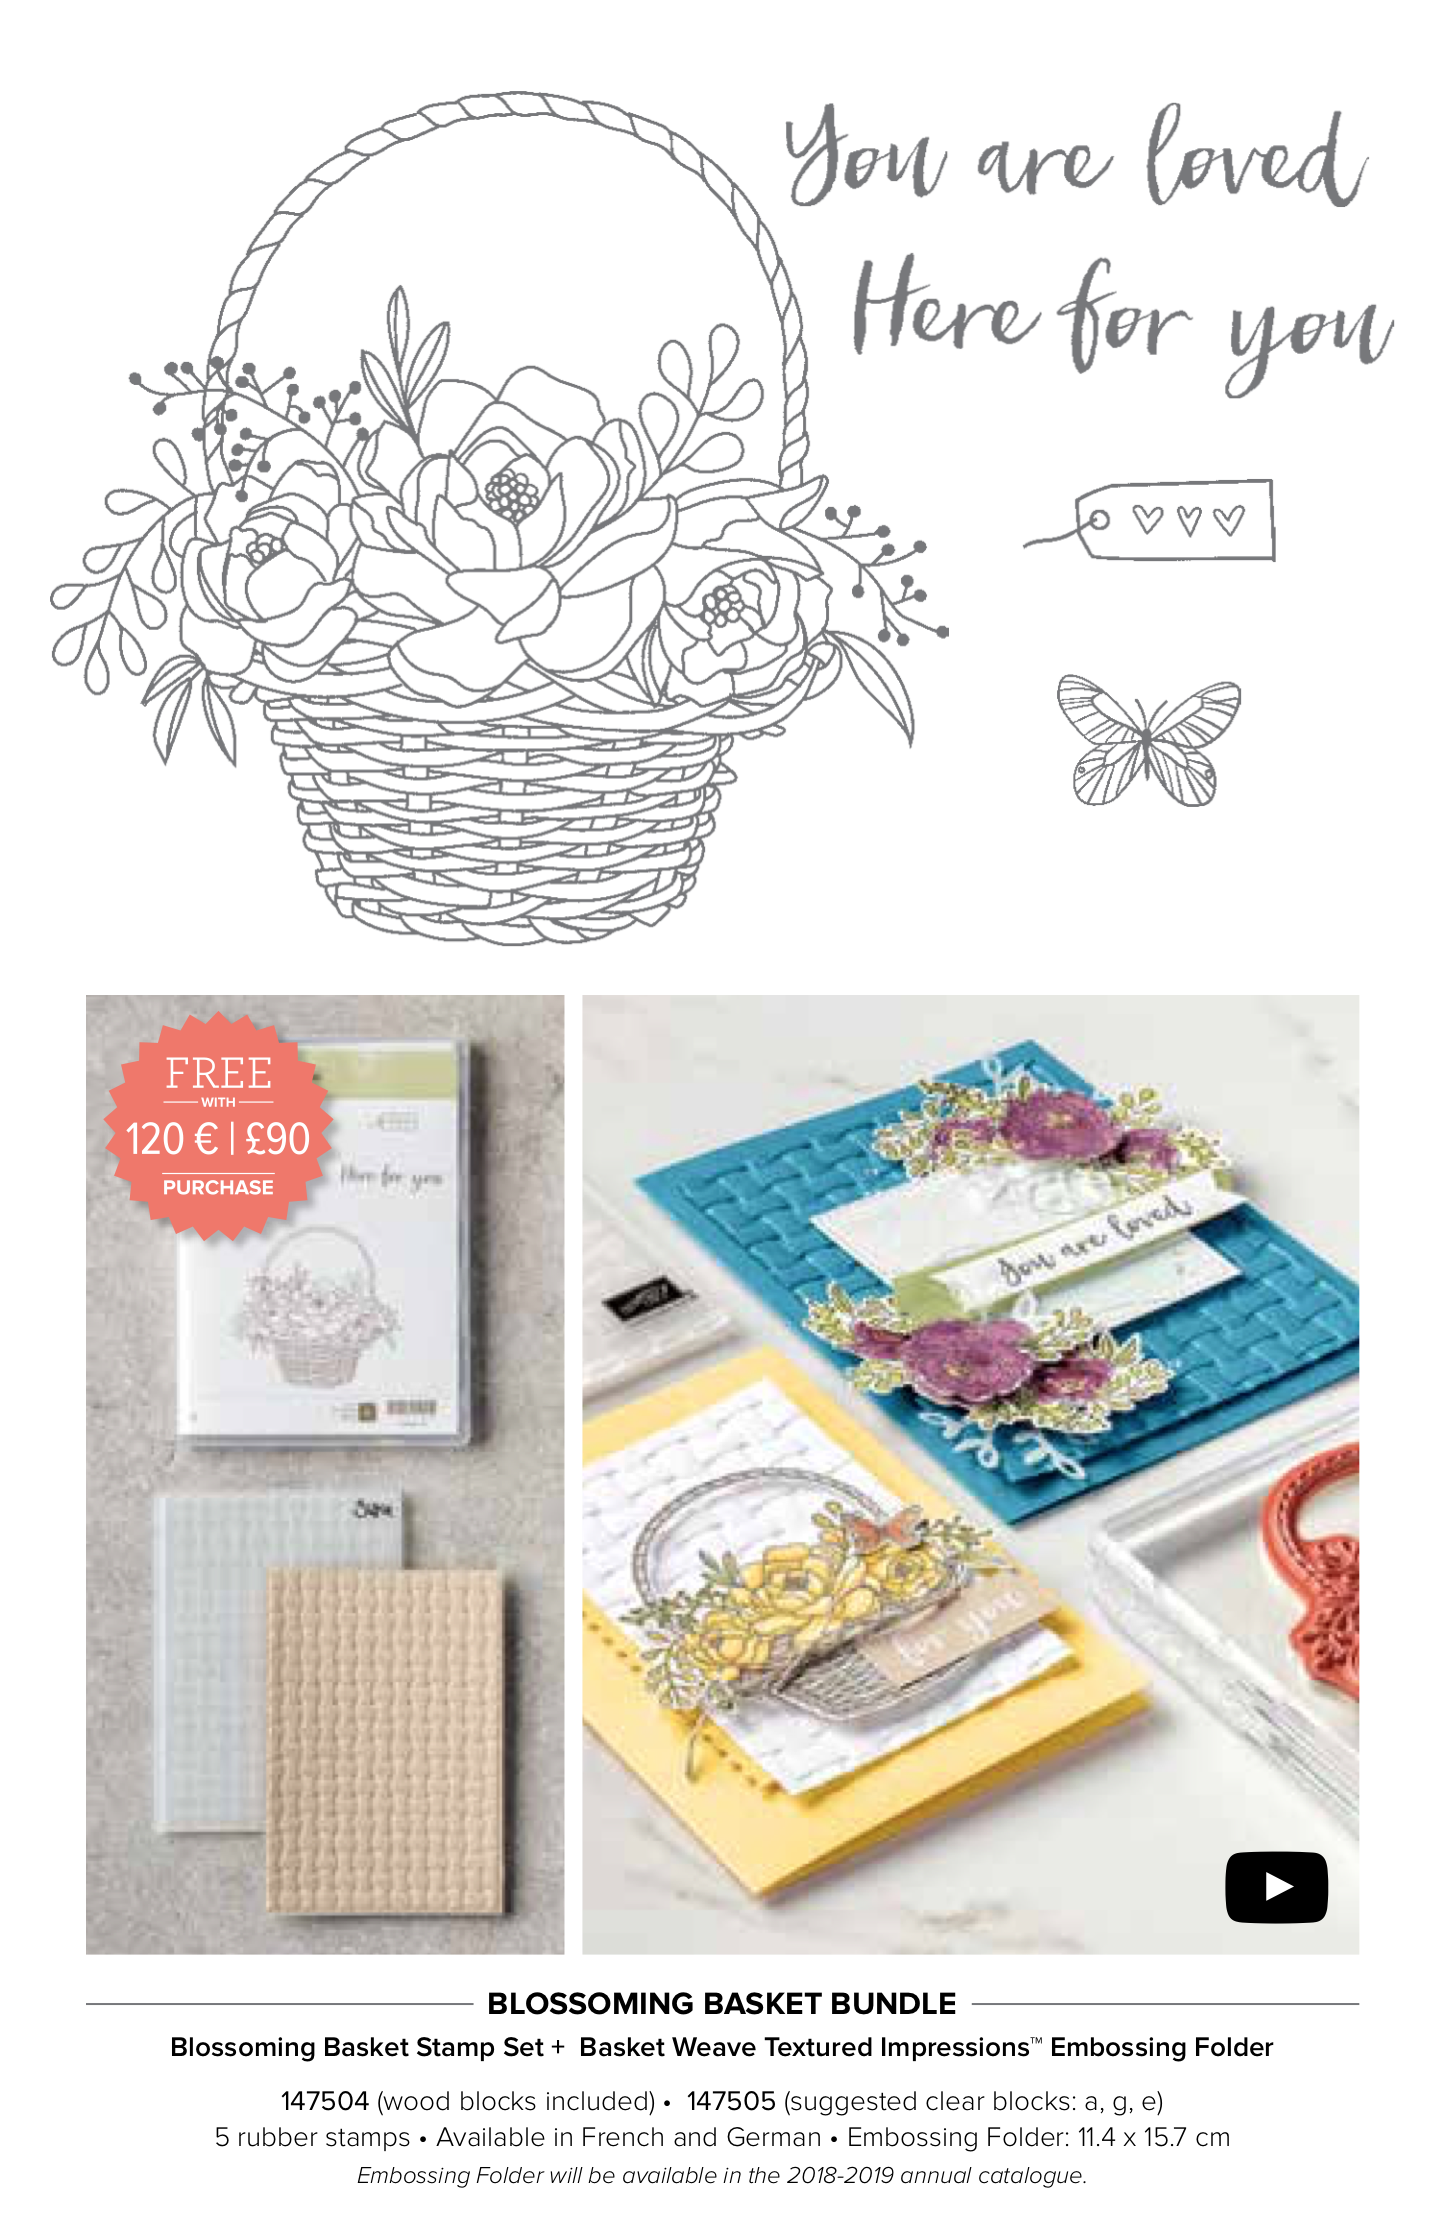 Blossoming Basket Bundle free from Stampin' Up!